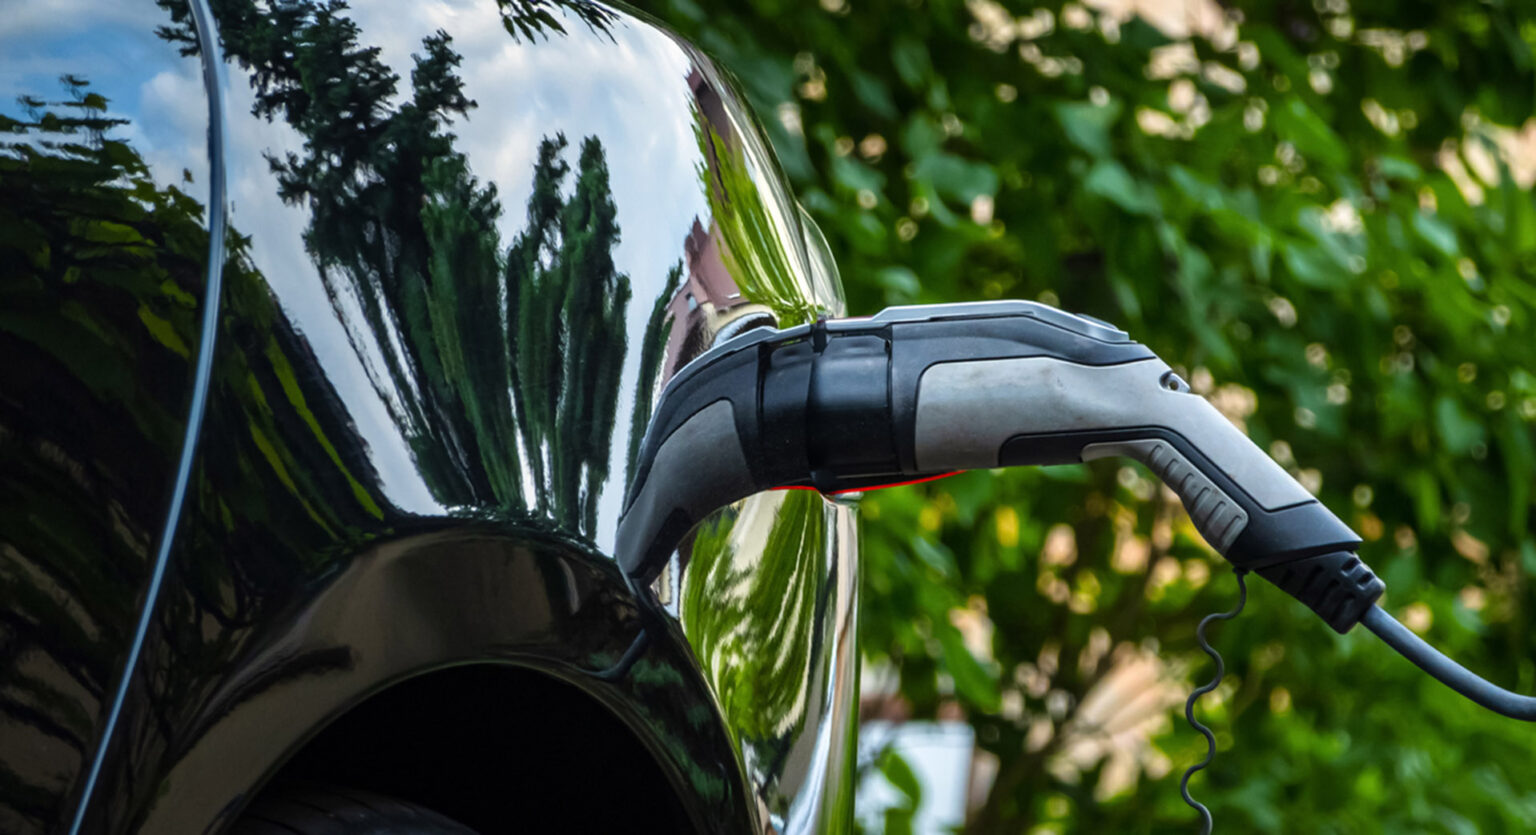 The energy efficiency of completely electric vehicles